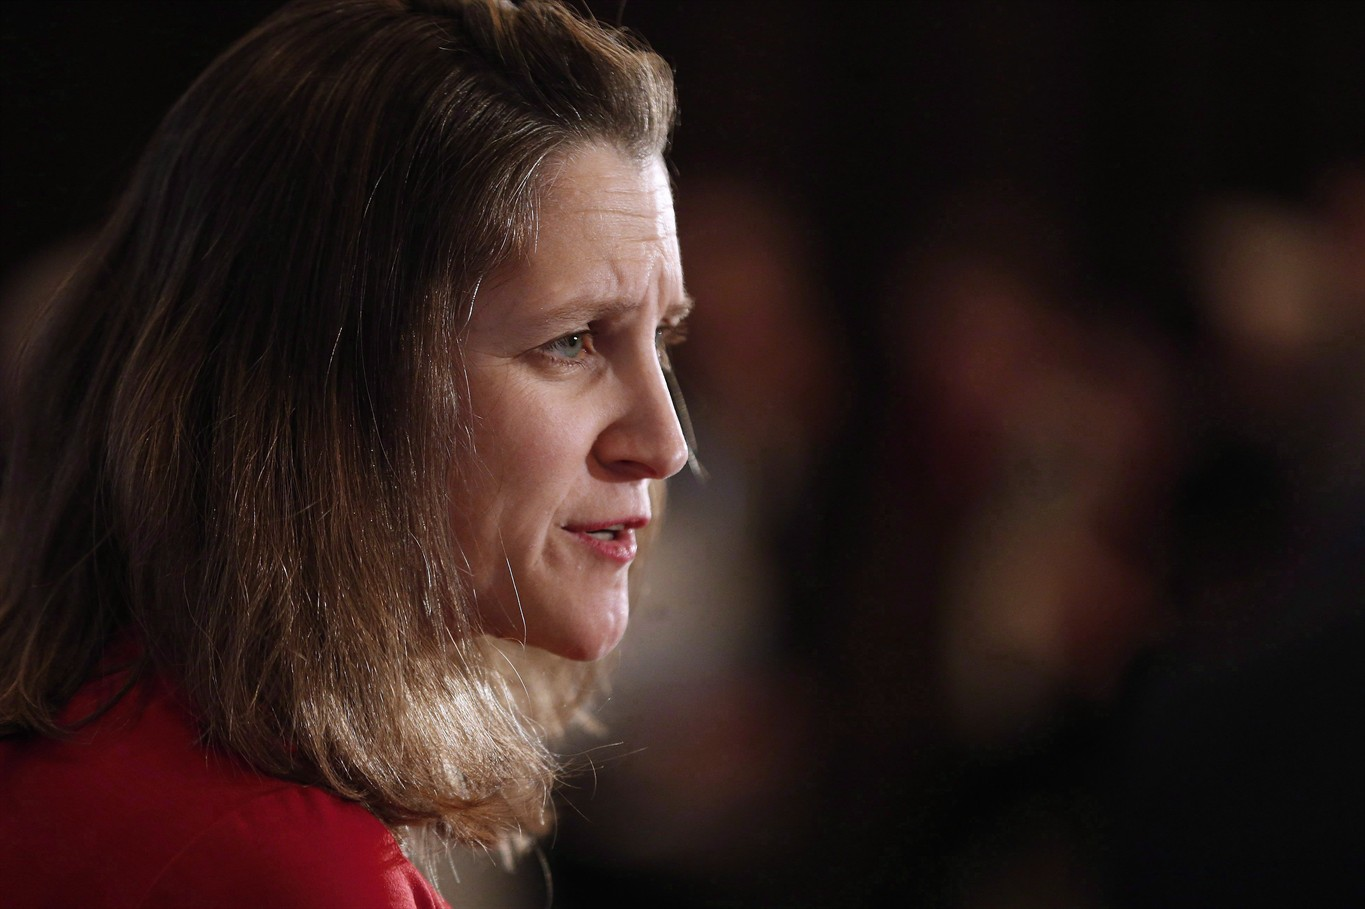 Canada could expand trade retaliation, ready if Trump escalates: Freeland